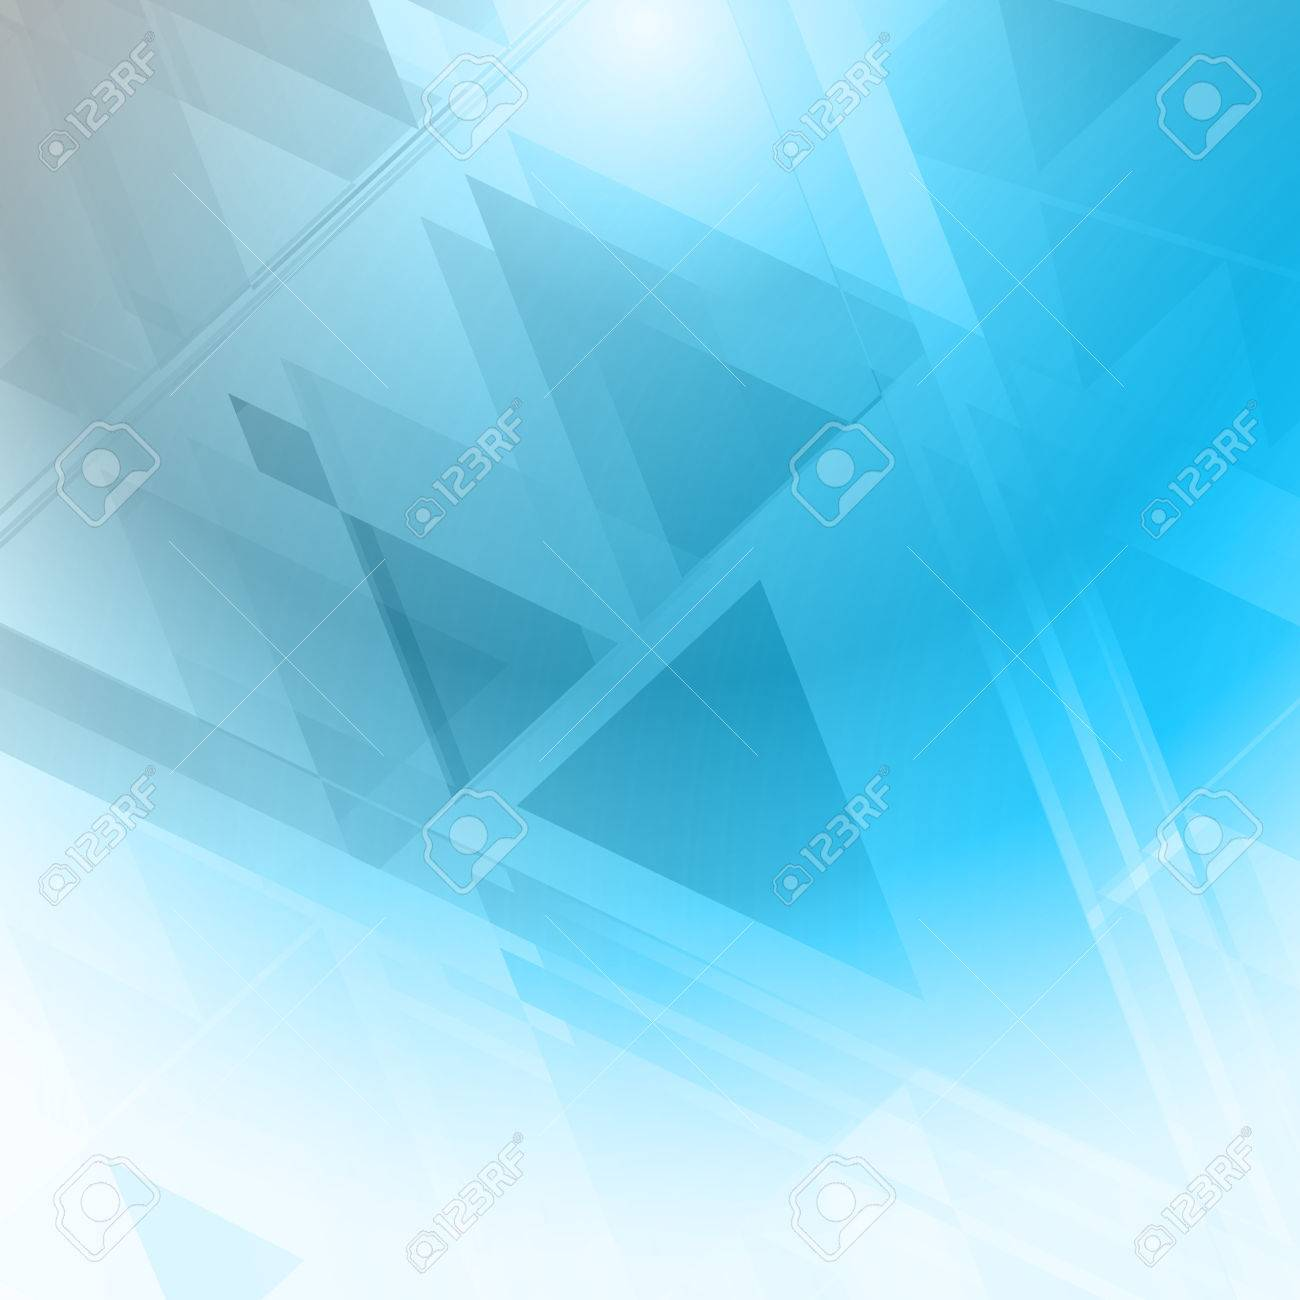 Abstract Design Page Background